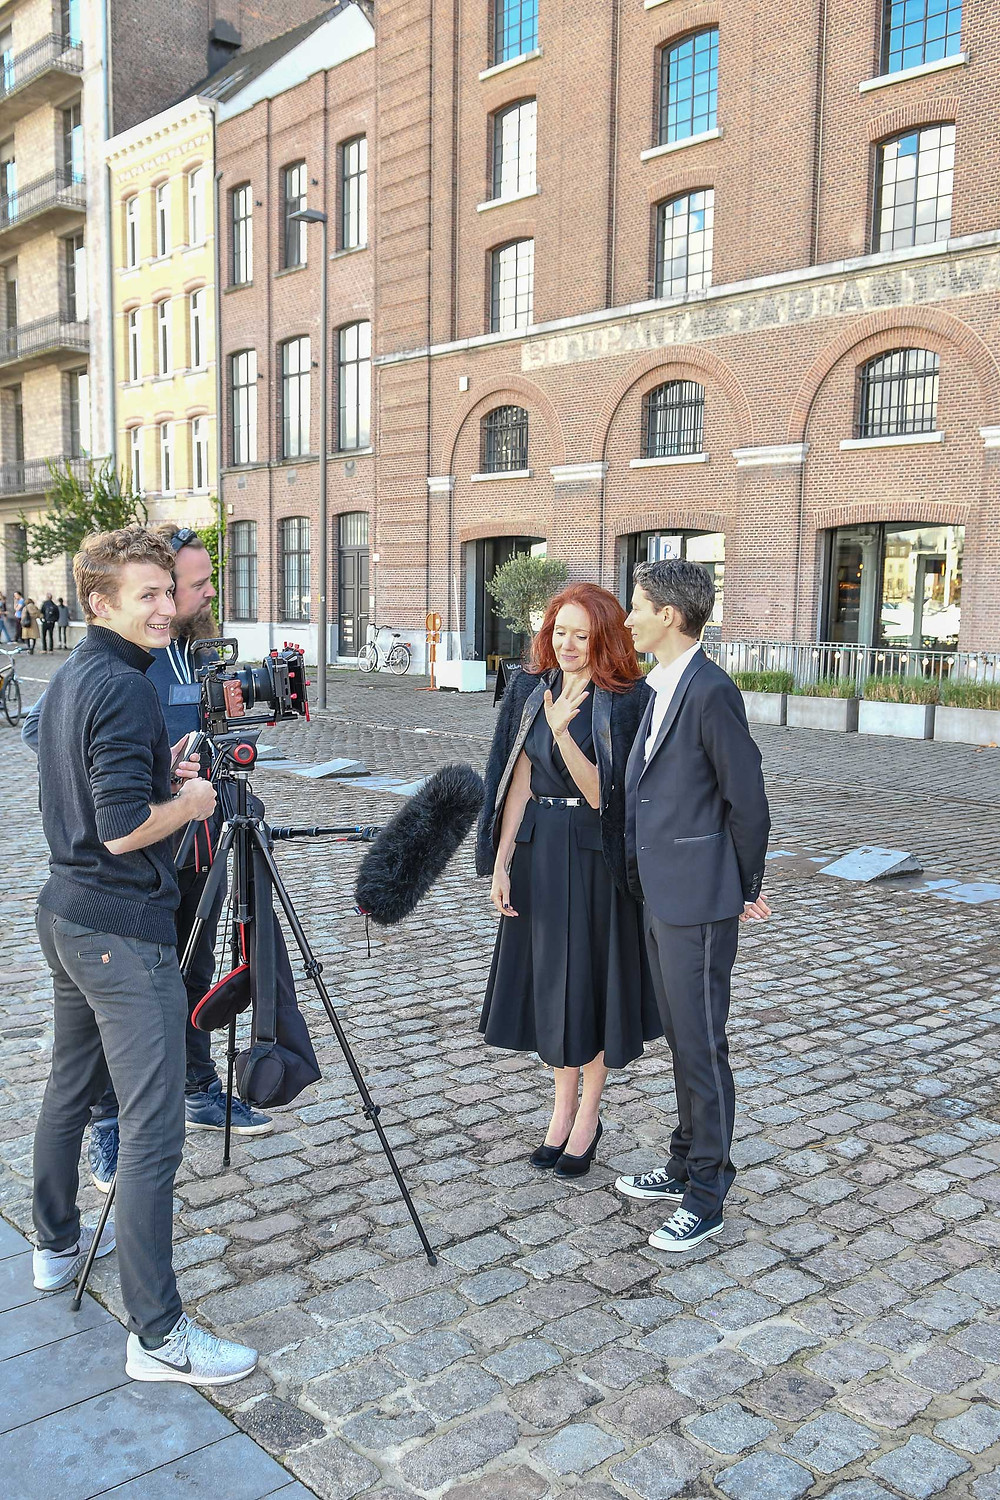 Lesbian art duo JF Pierets being interviewed for wedding 3 in their marriage equality project '22'.